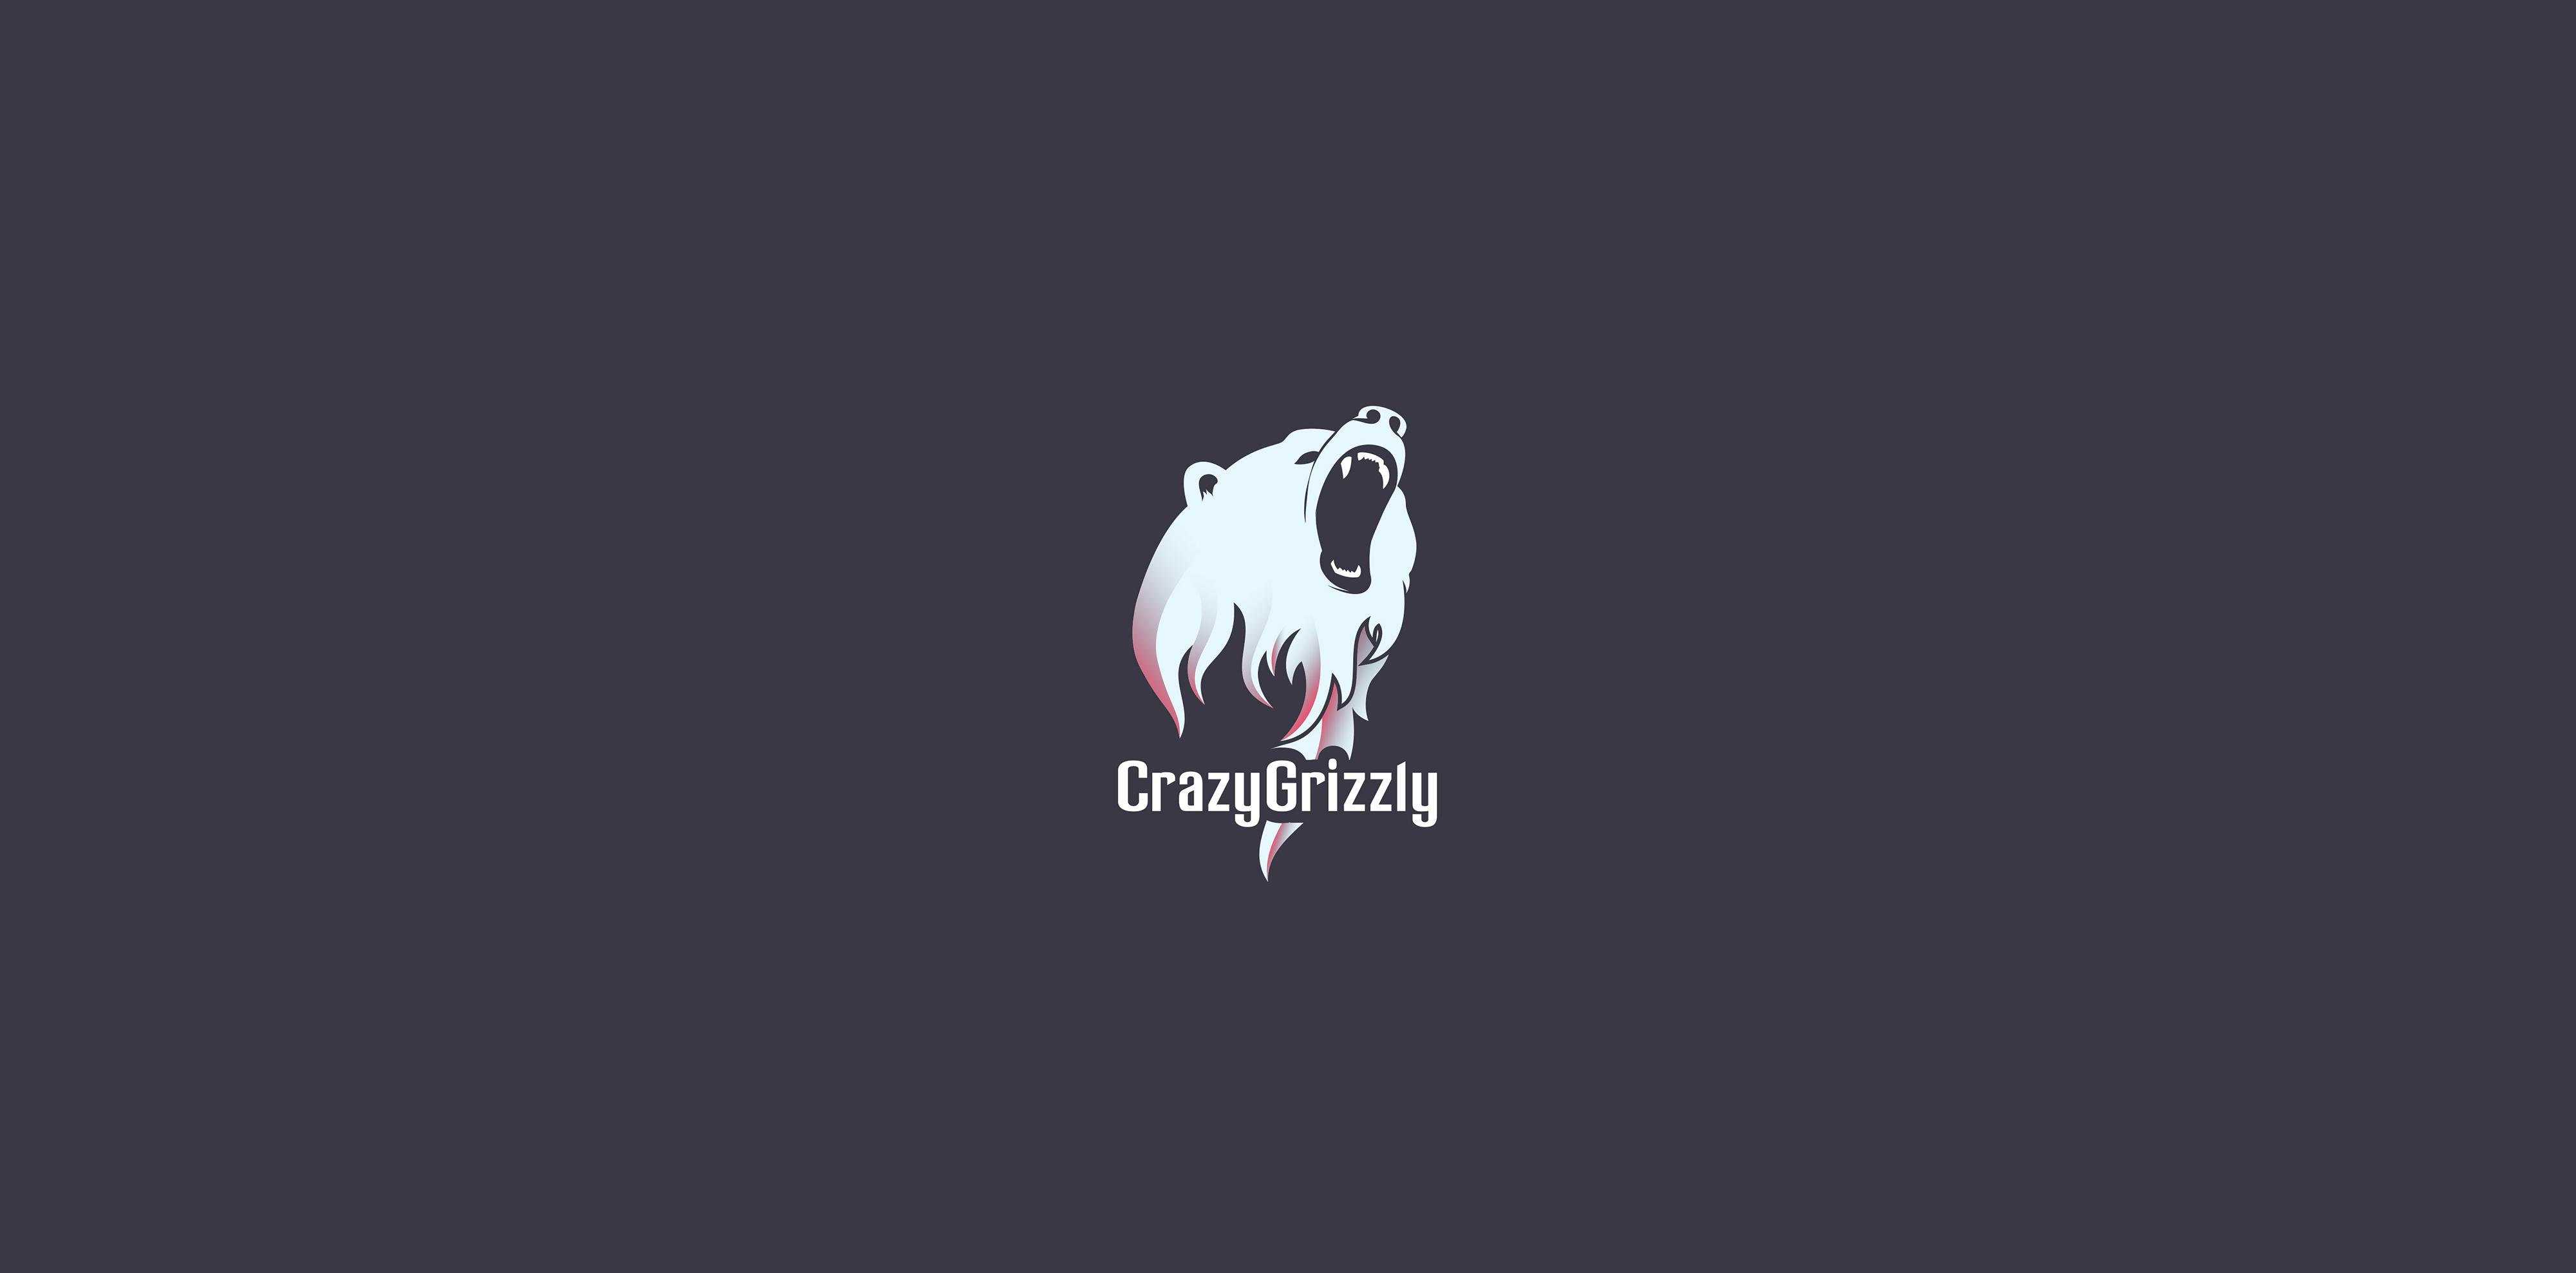 CrazyGrizzly